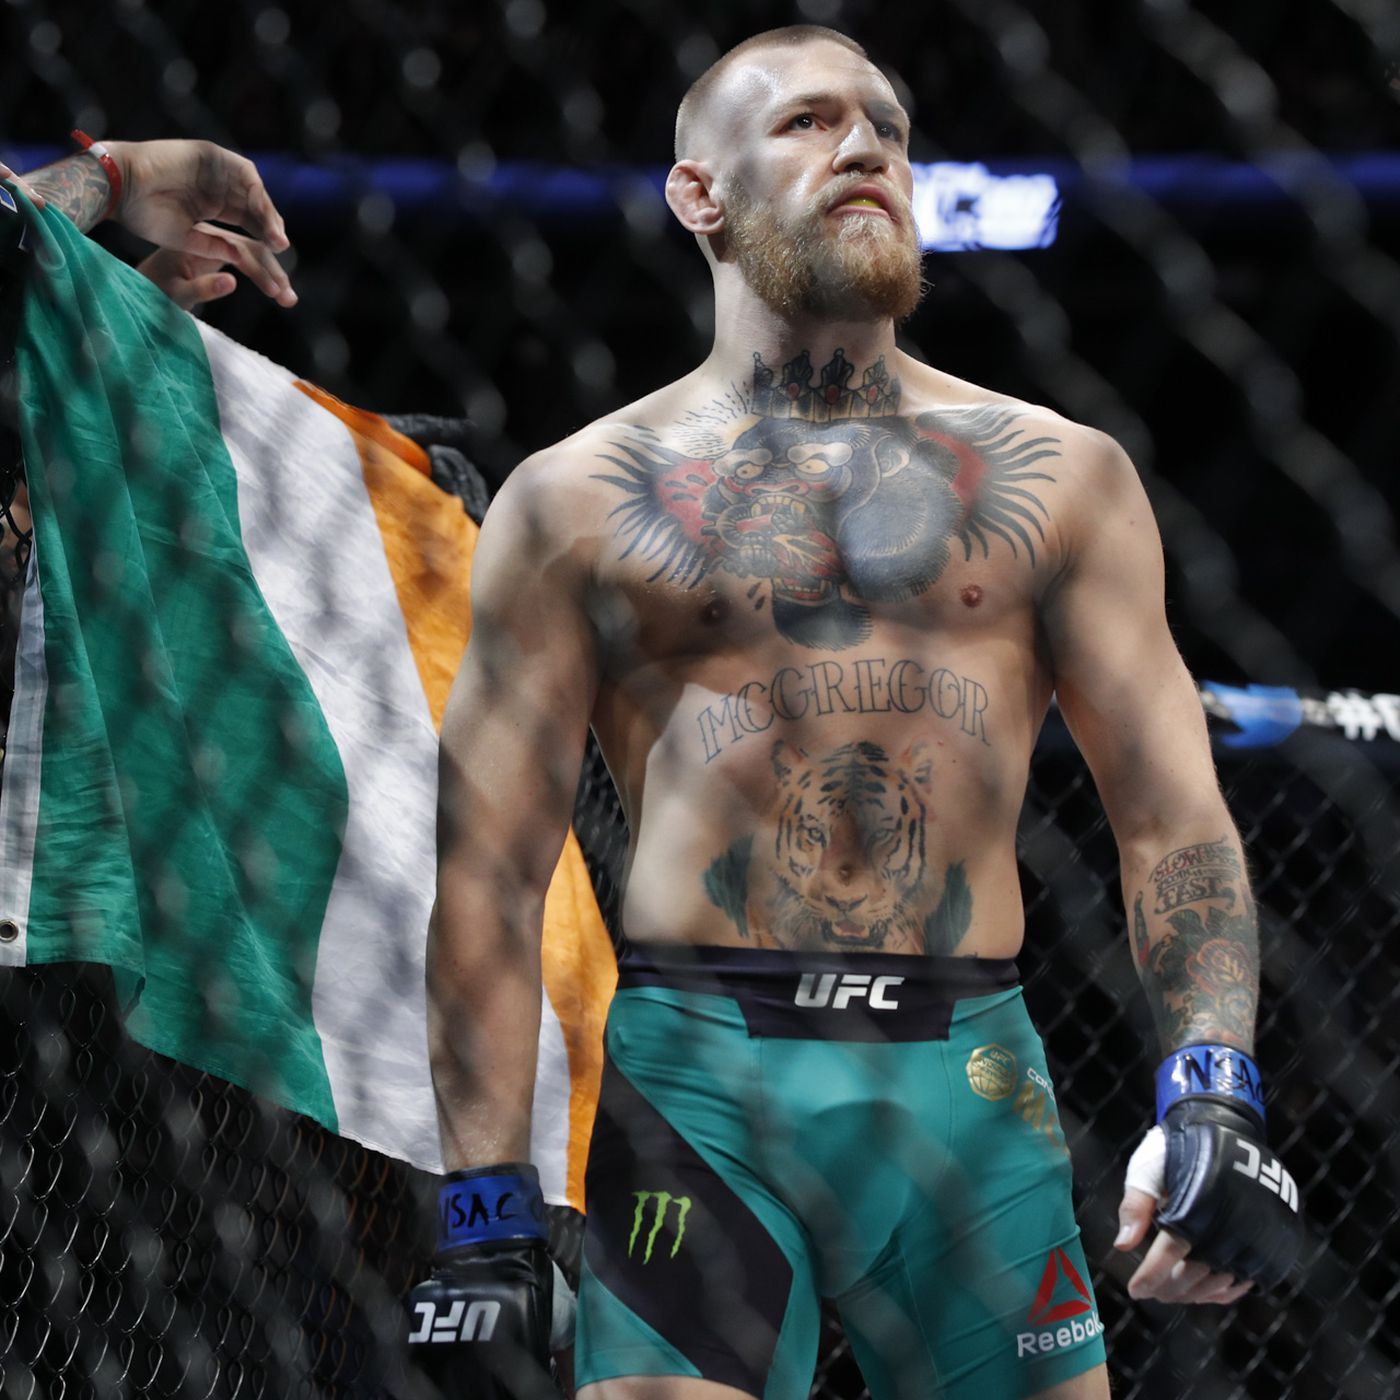 Ufc 246 Mcgregor Vs Cowboy Pay Per View Opening Released